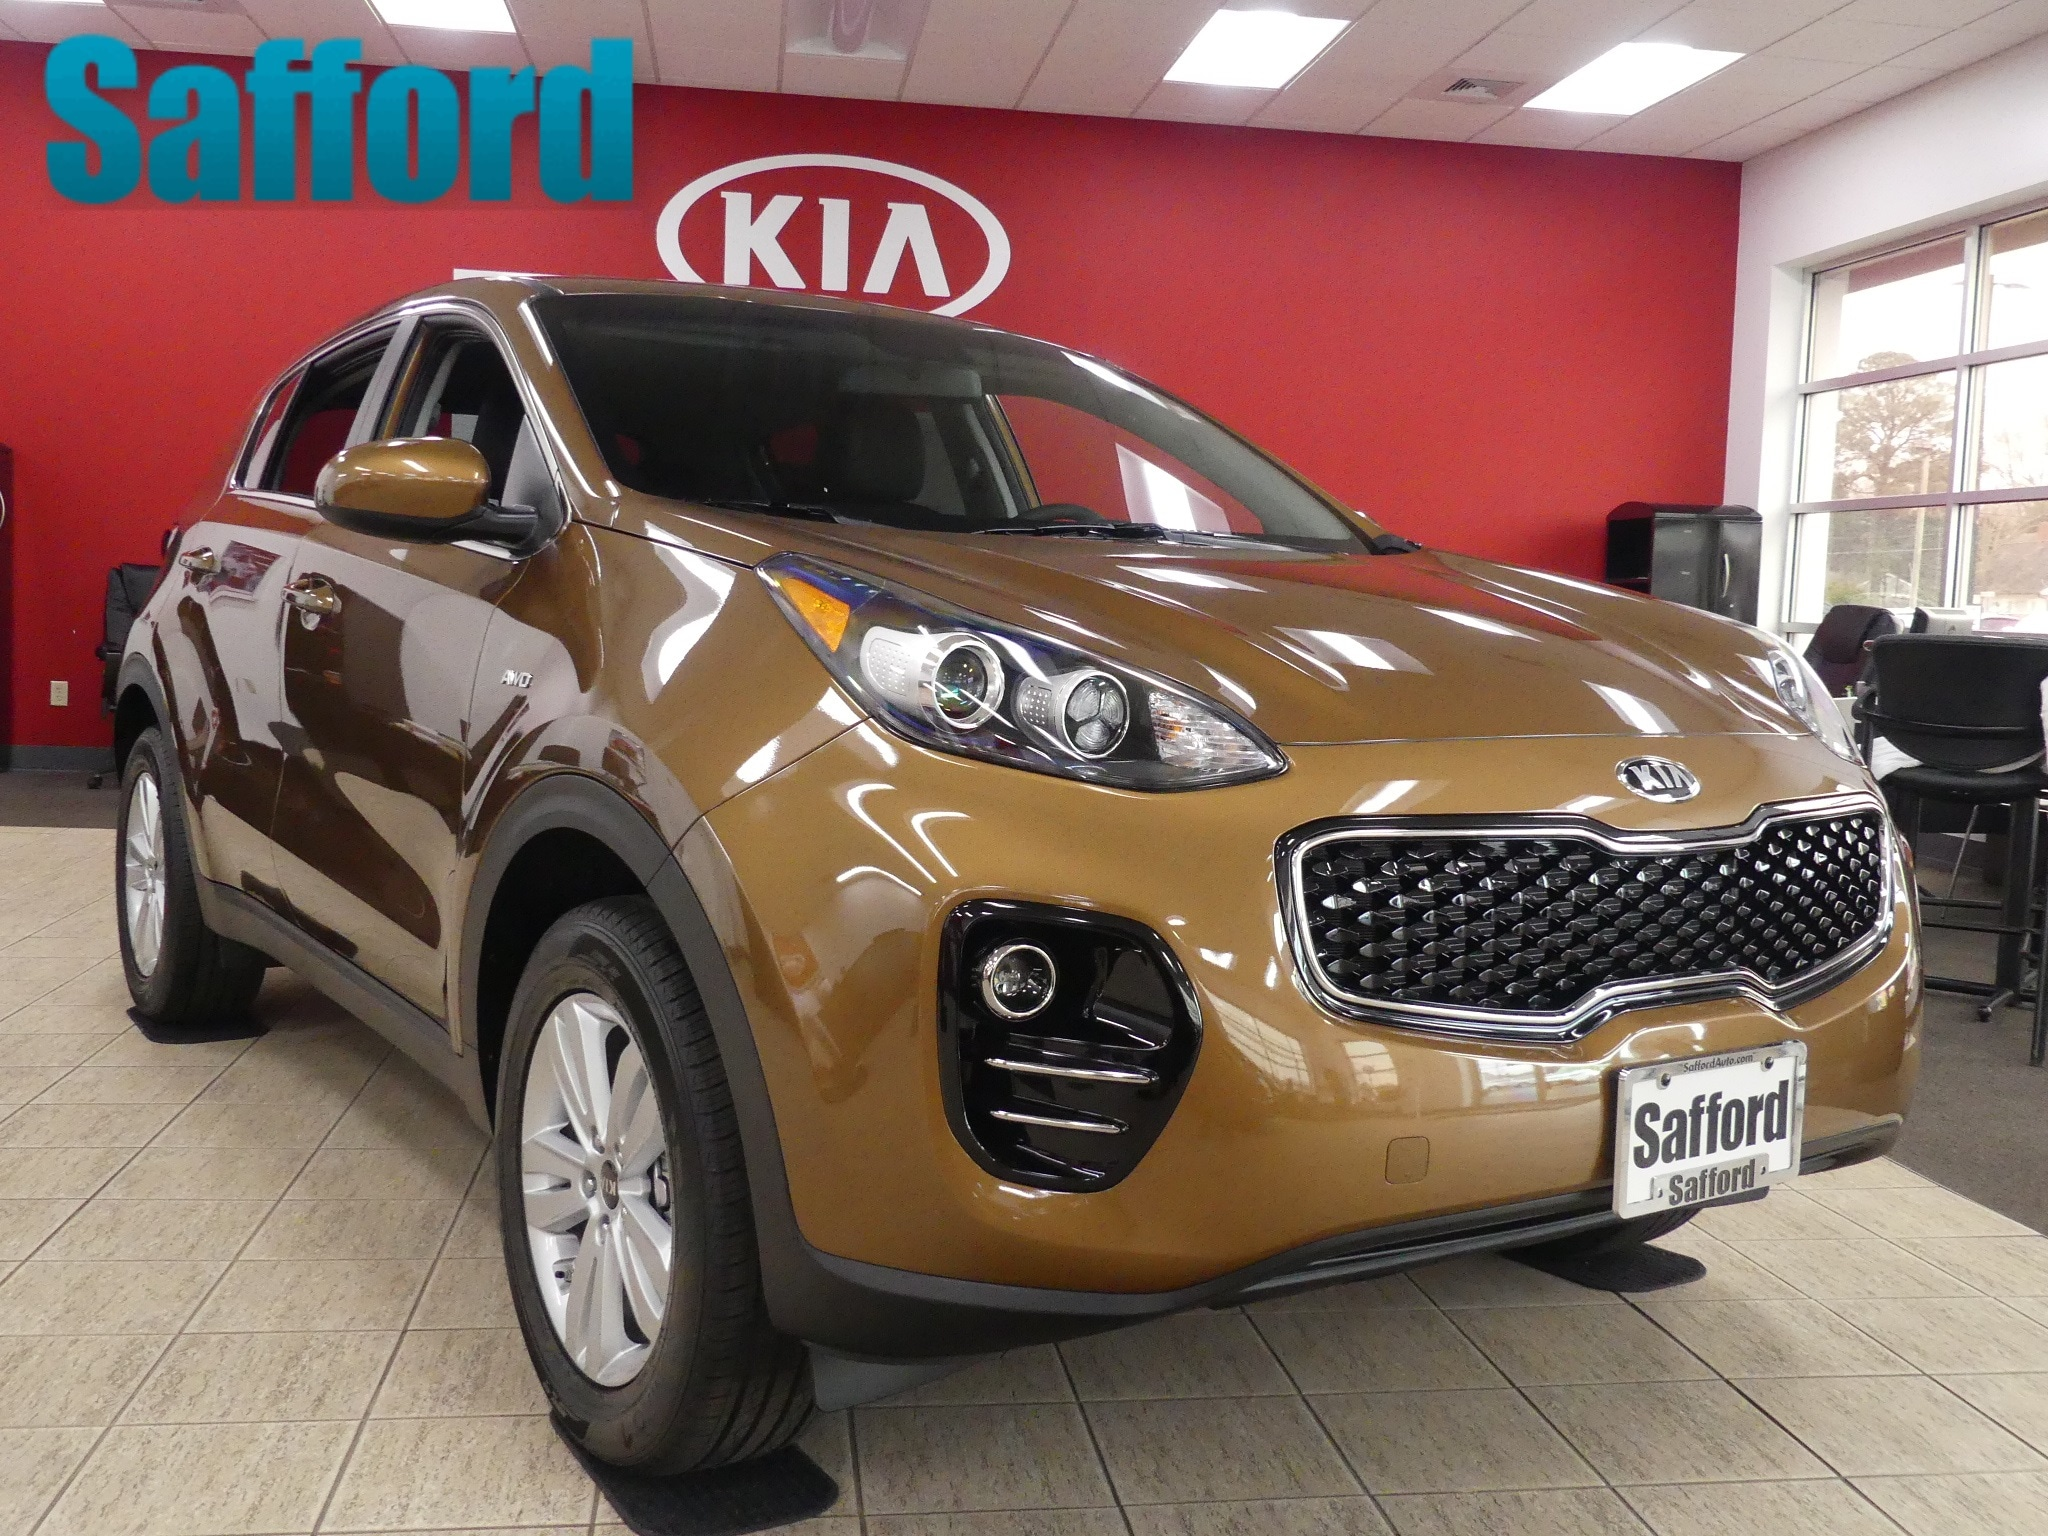 Eastern Shore Kia New 2019 Kia Sportage For Sale At Safford Automotive Group Vin